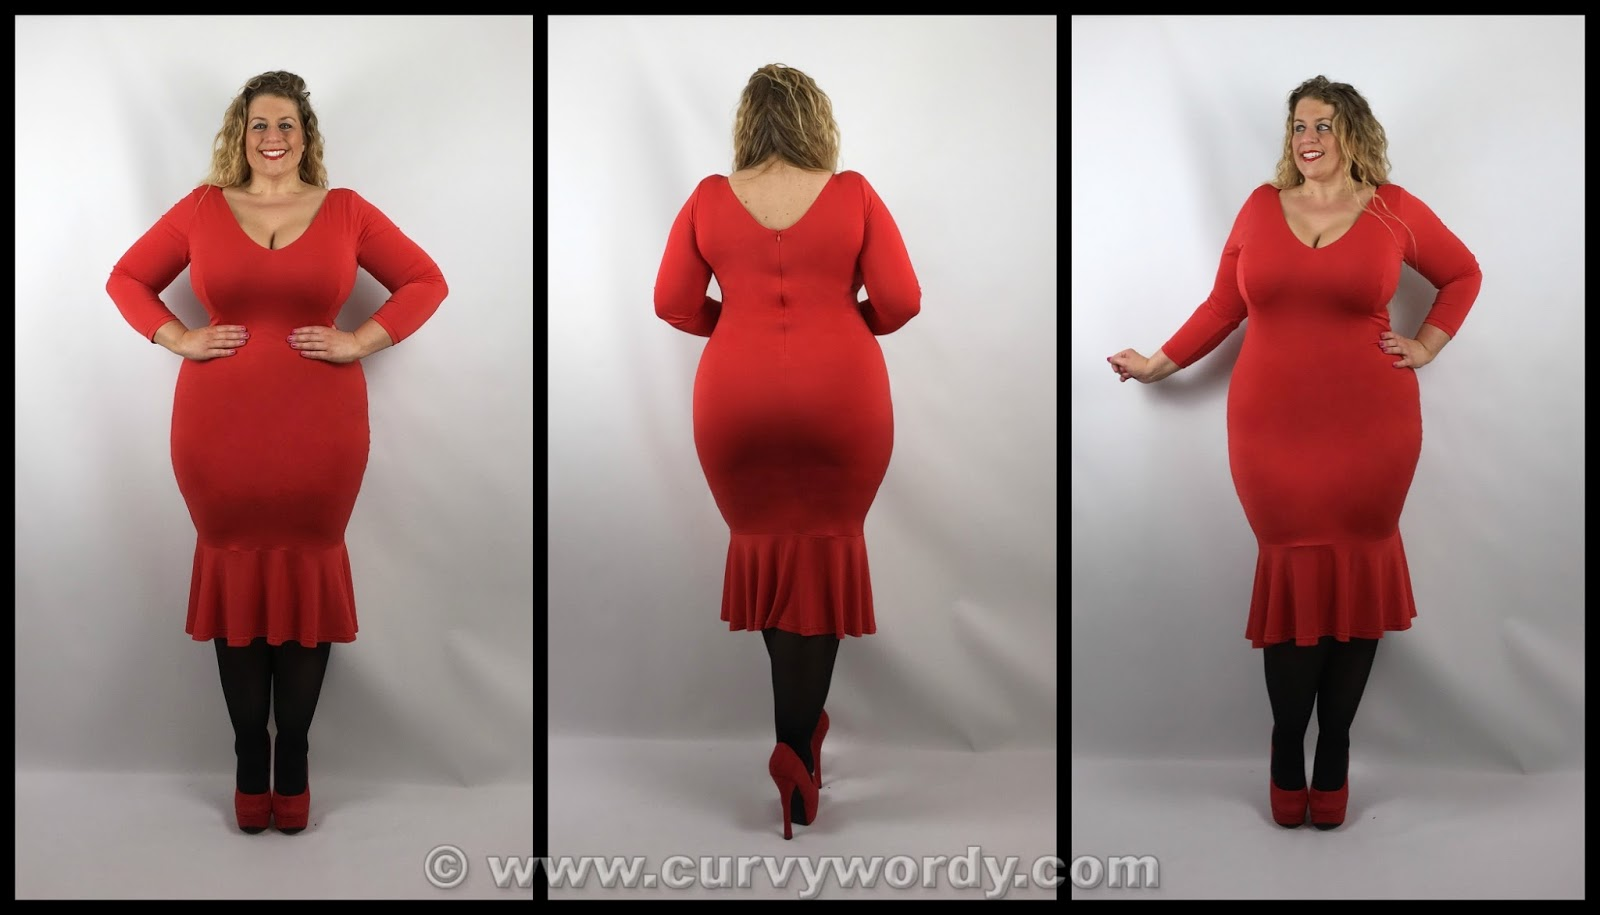 bcb19a51ea86b I tried the Red Bellatrix dress (£45, UK sizes 16-32) first of all: